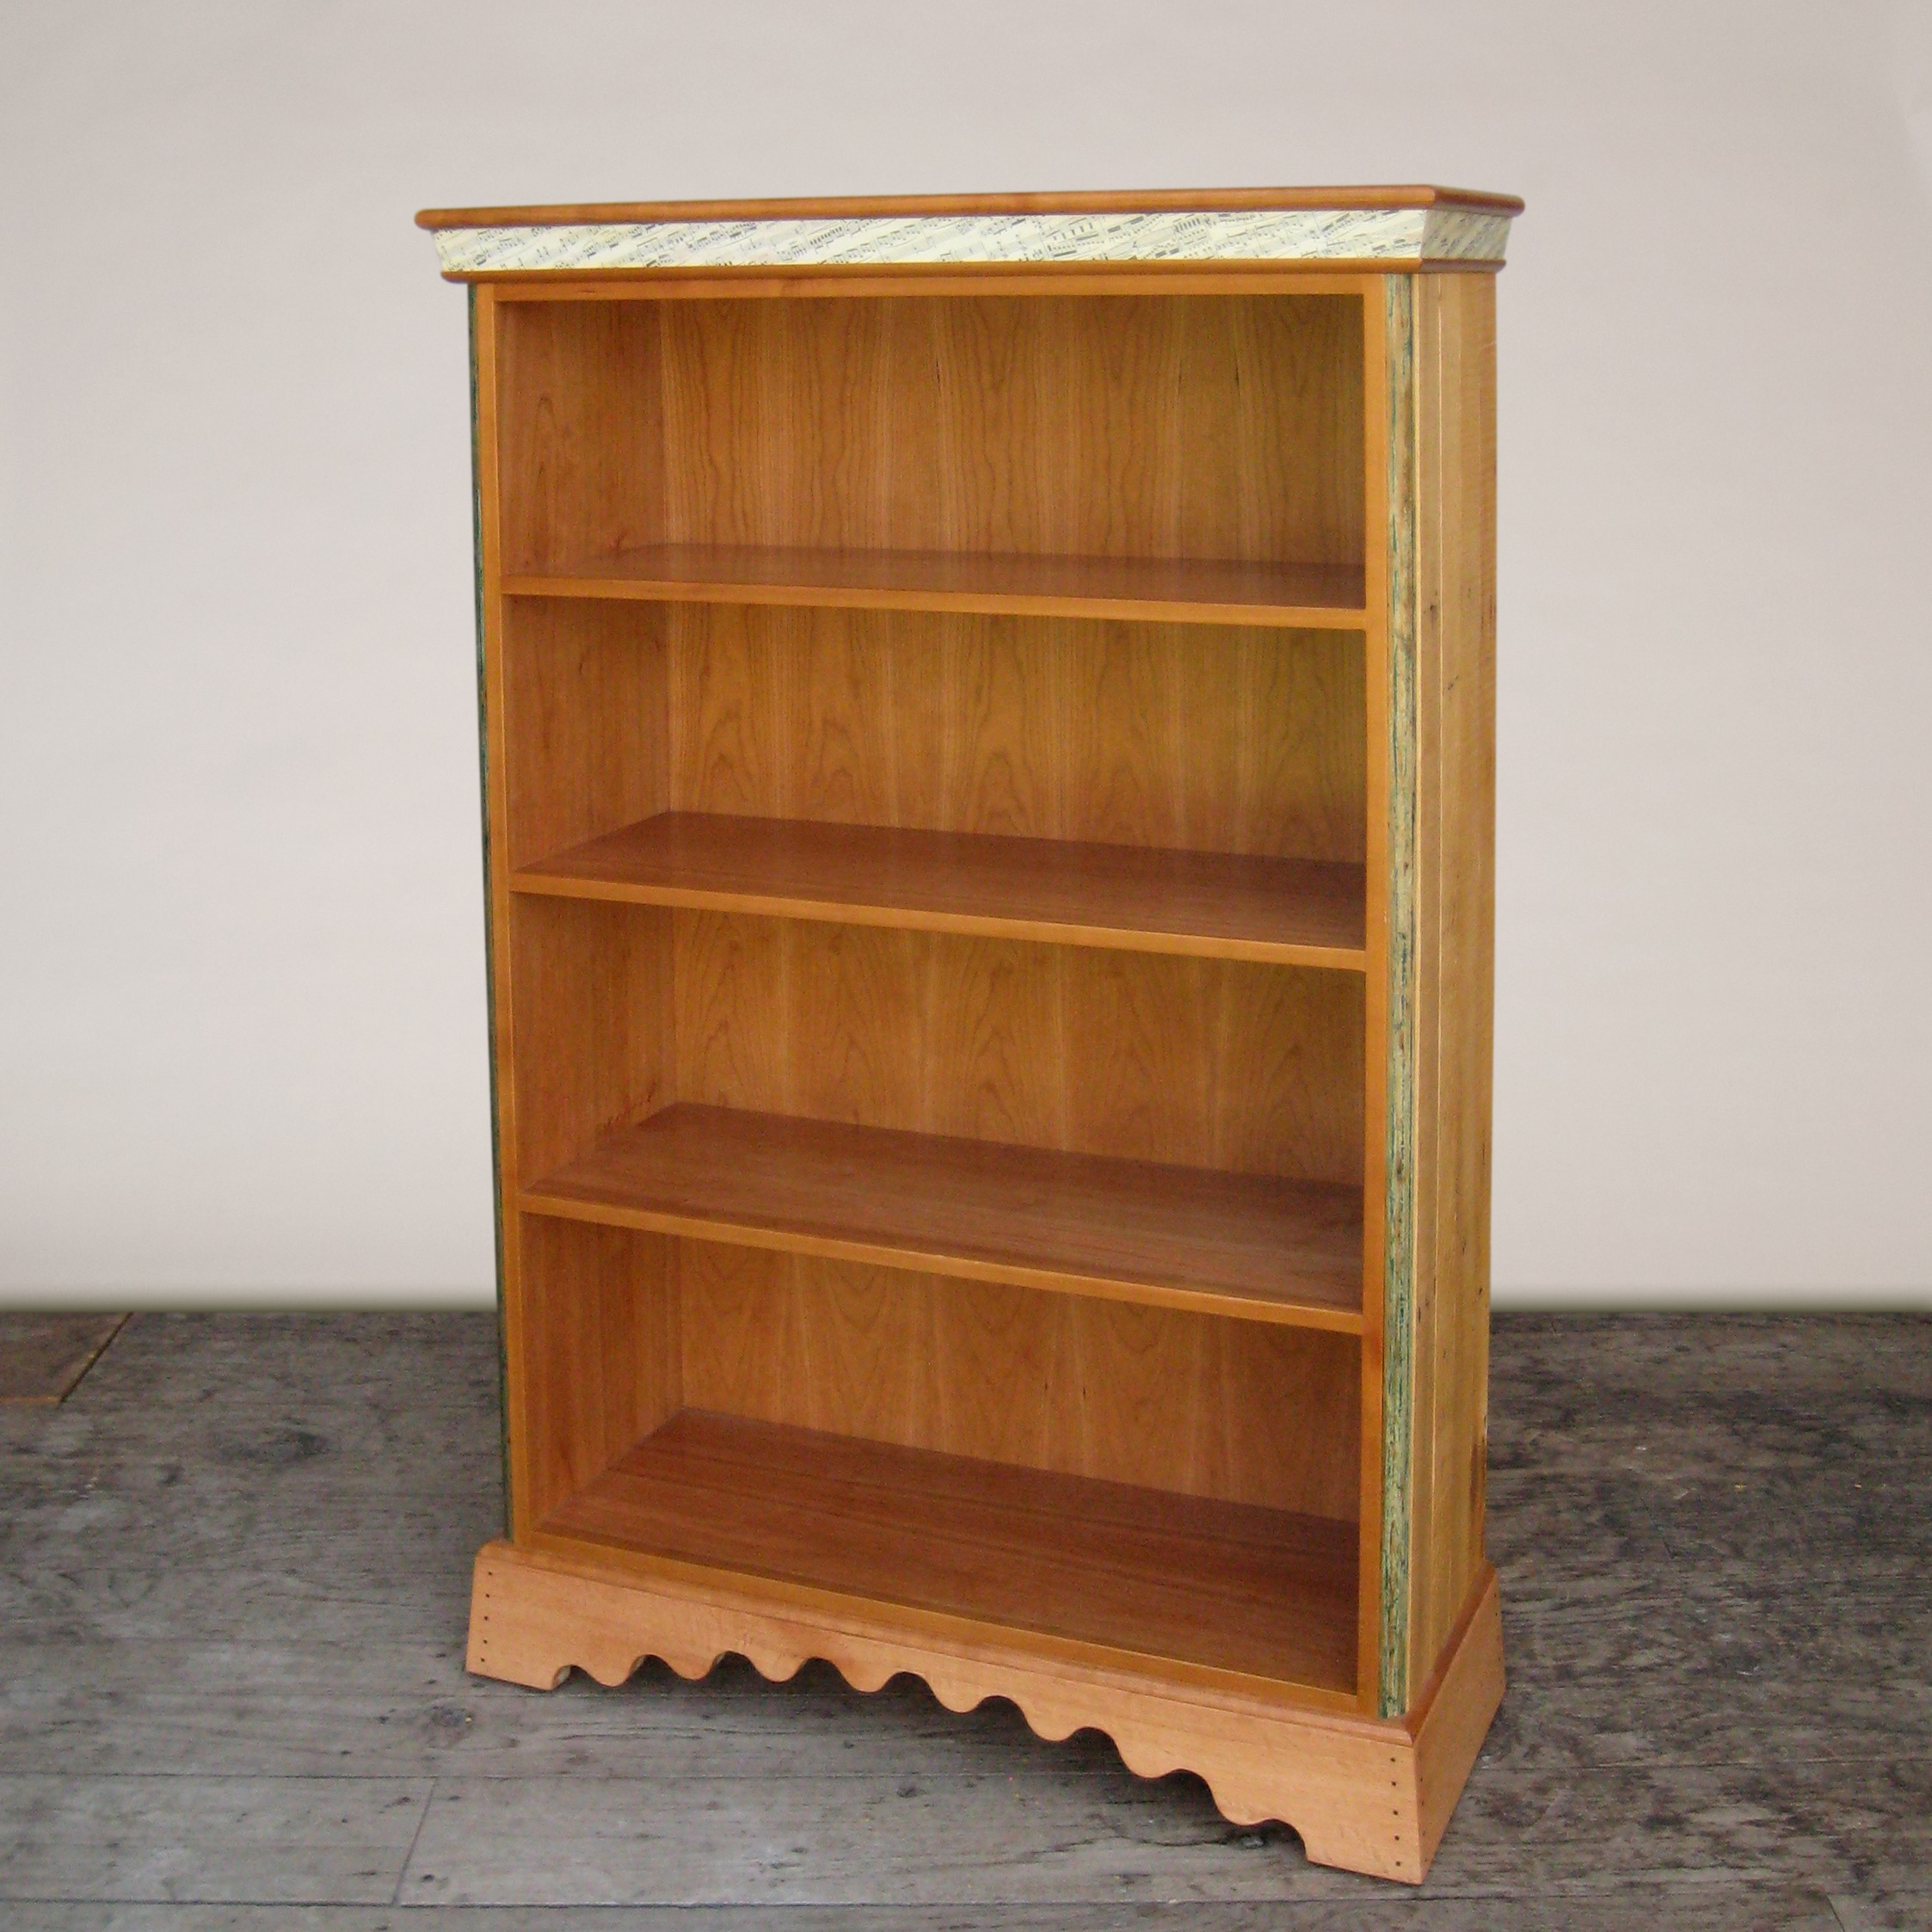 bookcase-music-2012-010.jpg